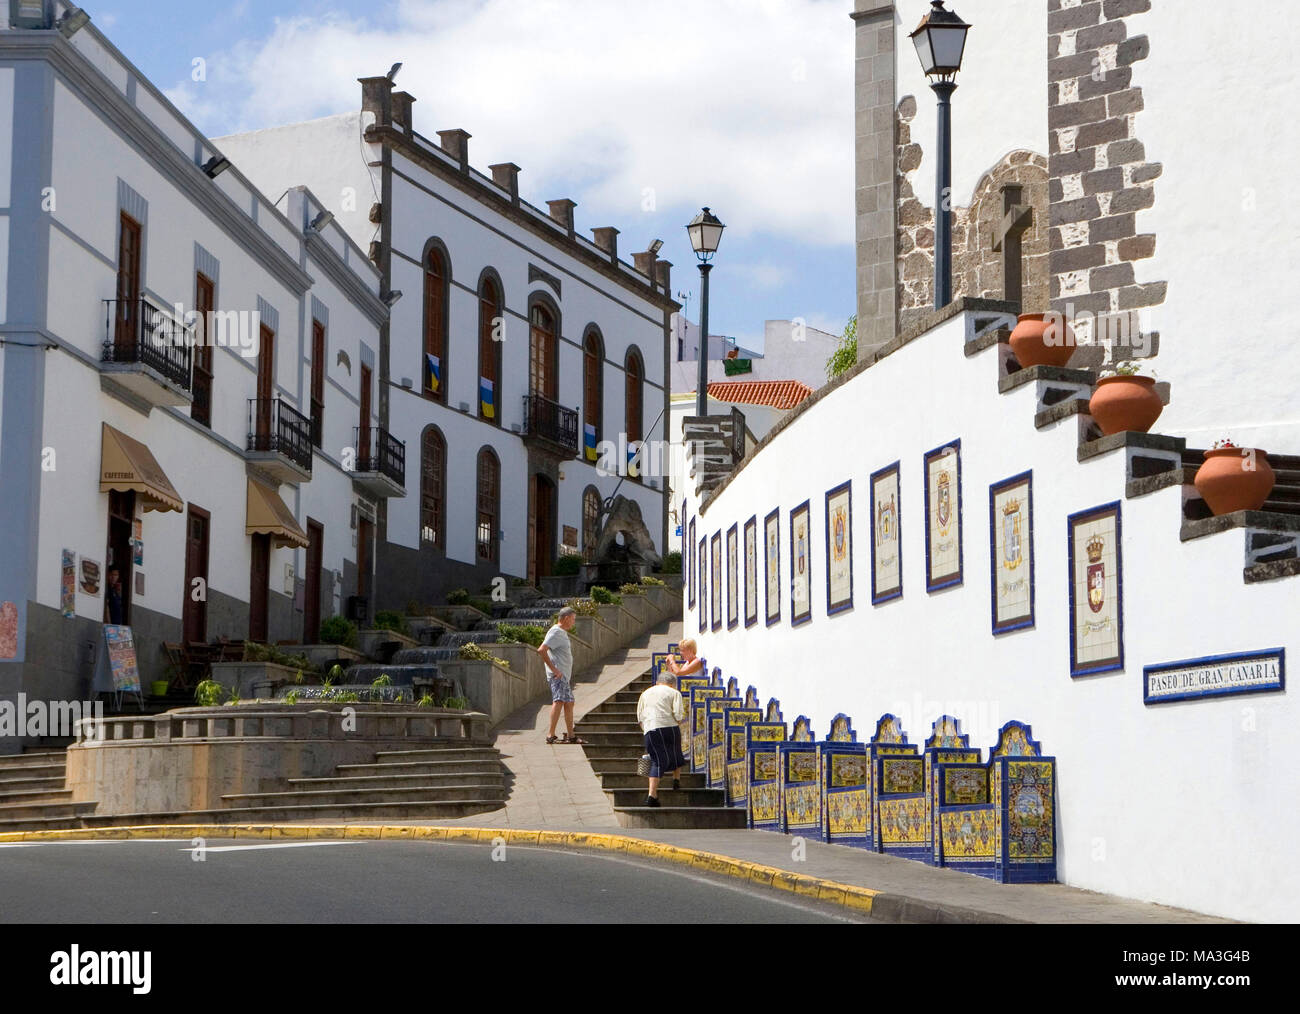 Firgas, Paseo de Gran Canaria,  founded in 1995 by Spanish artists. The lower part shows benches with elaborate tiles which represent 21 parishes of the island. The upper part represents the seven Canary Islands. - Stock Image